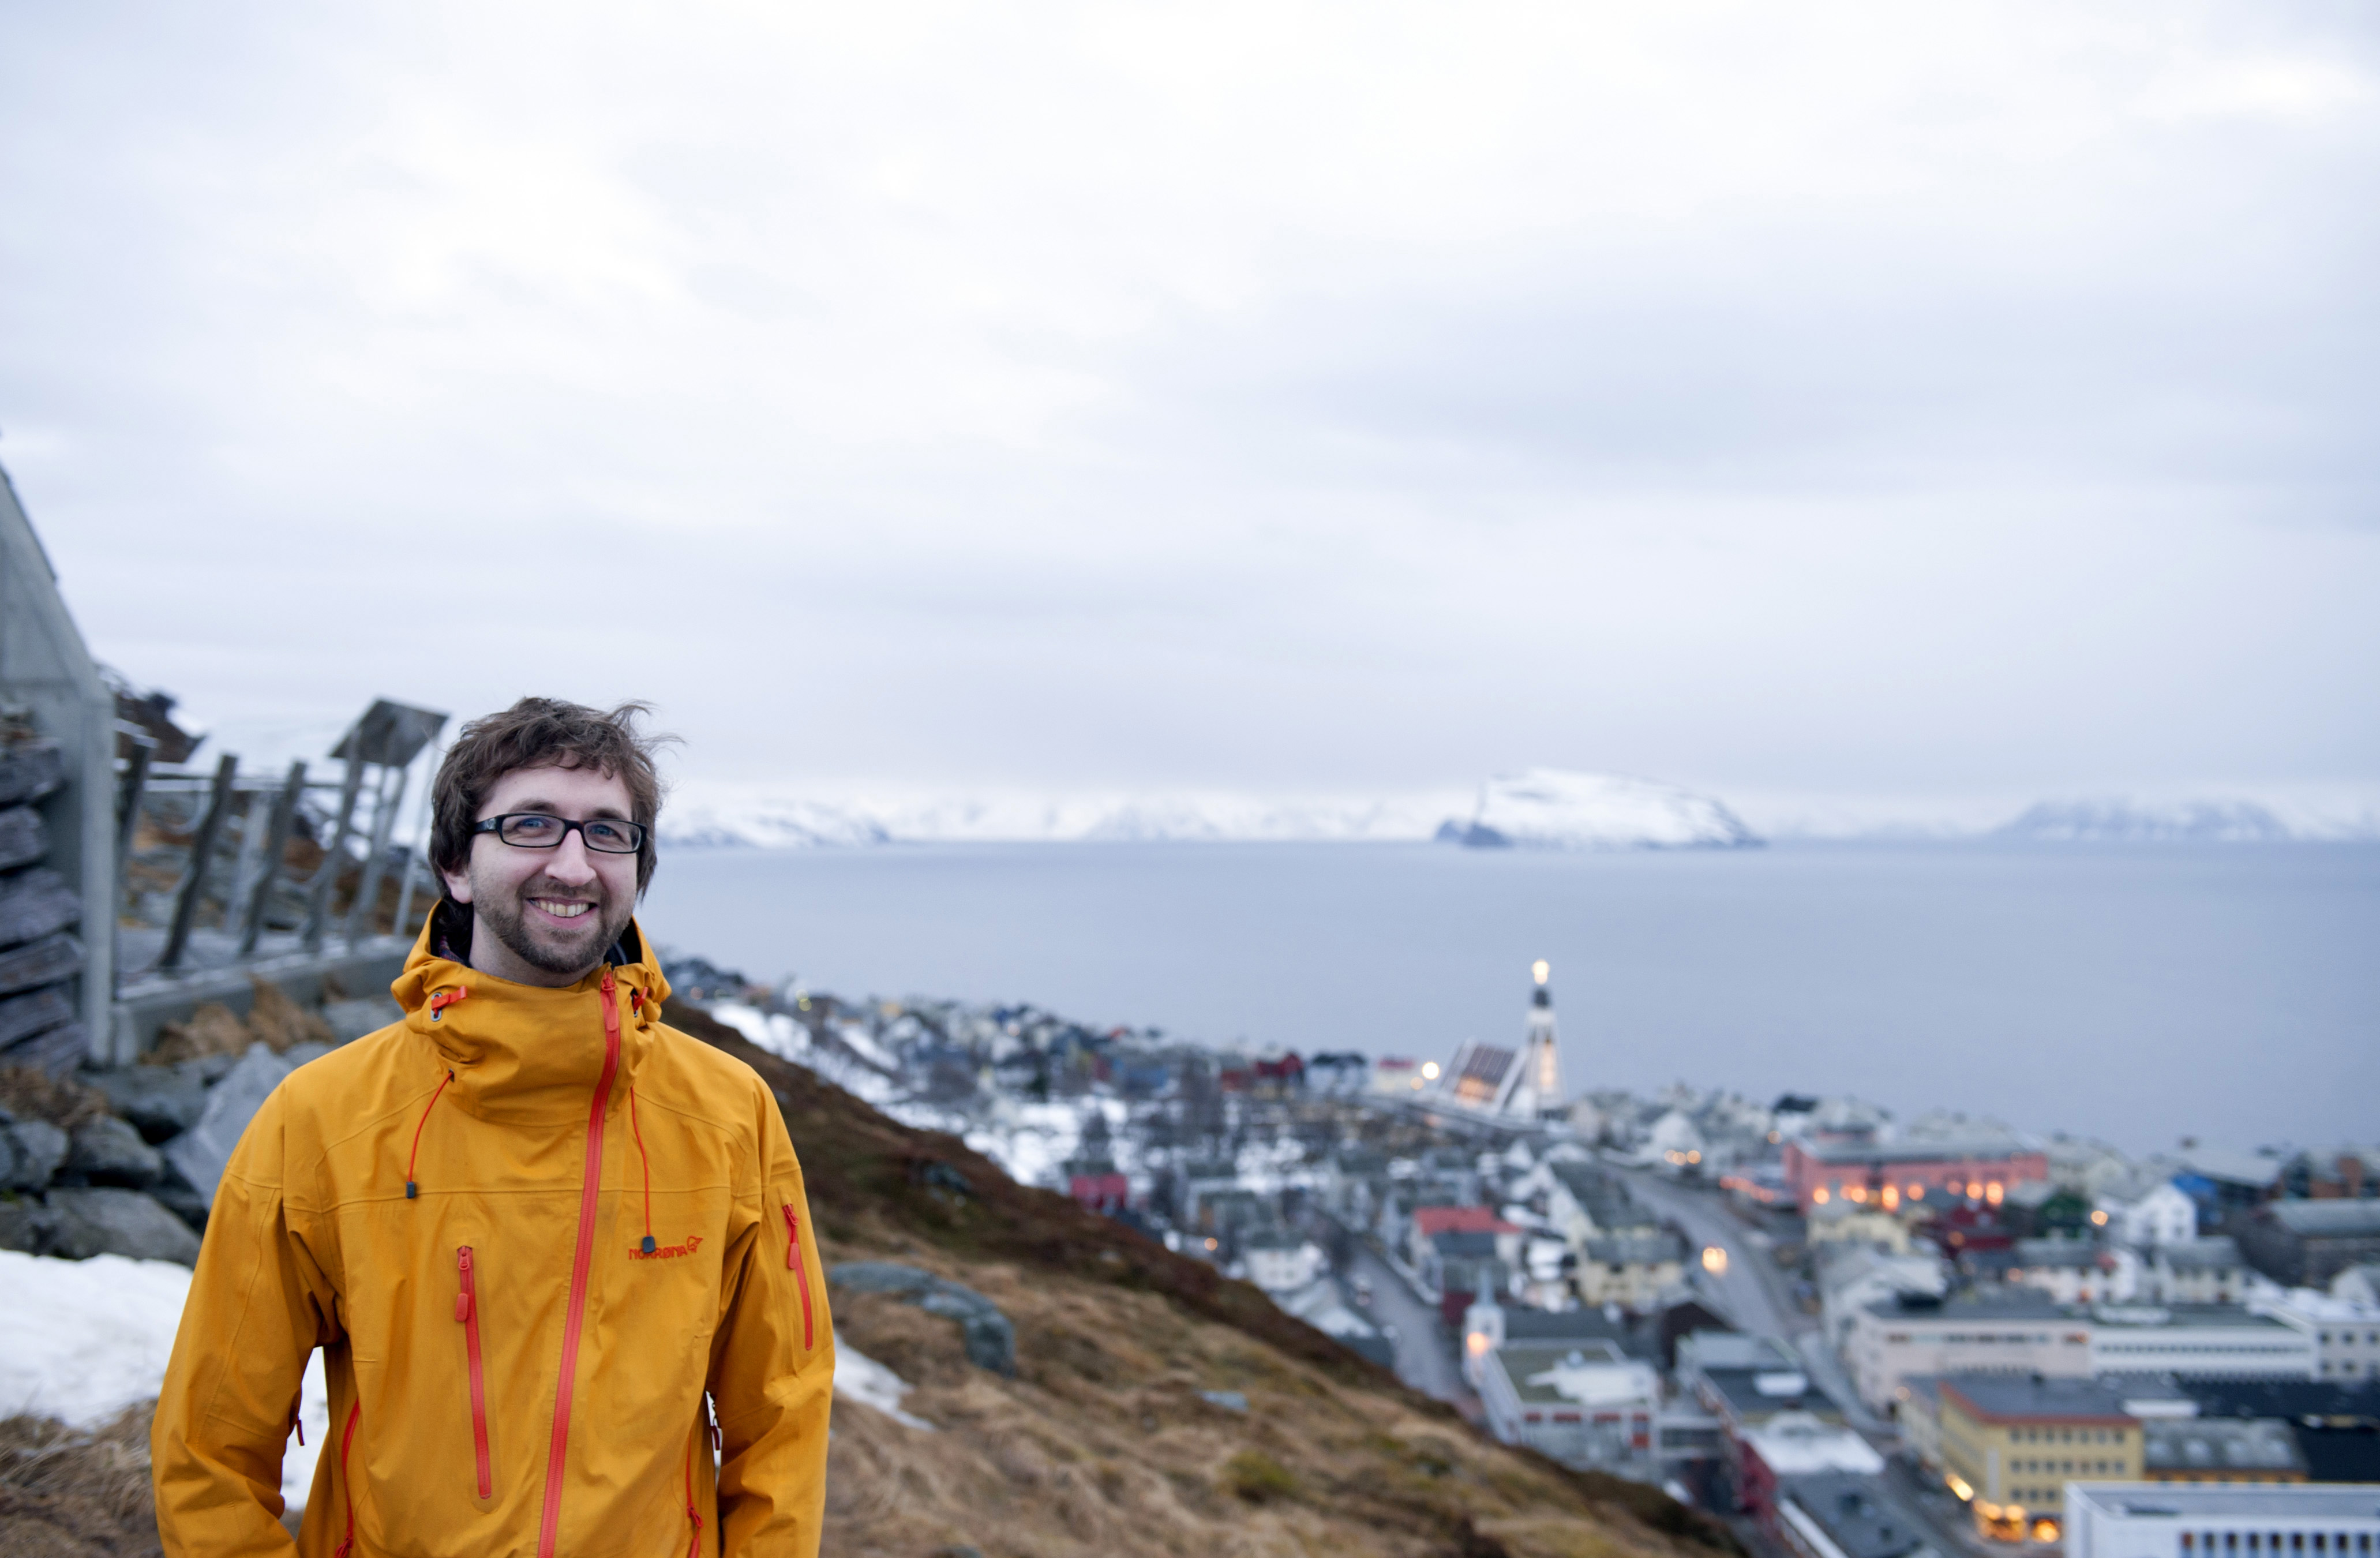 The Rev. Per Bradley serves the United Methodist church in Hammerfest, Norway. Photo by Karl Anders Ellingsen